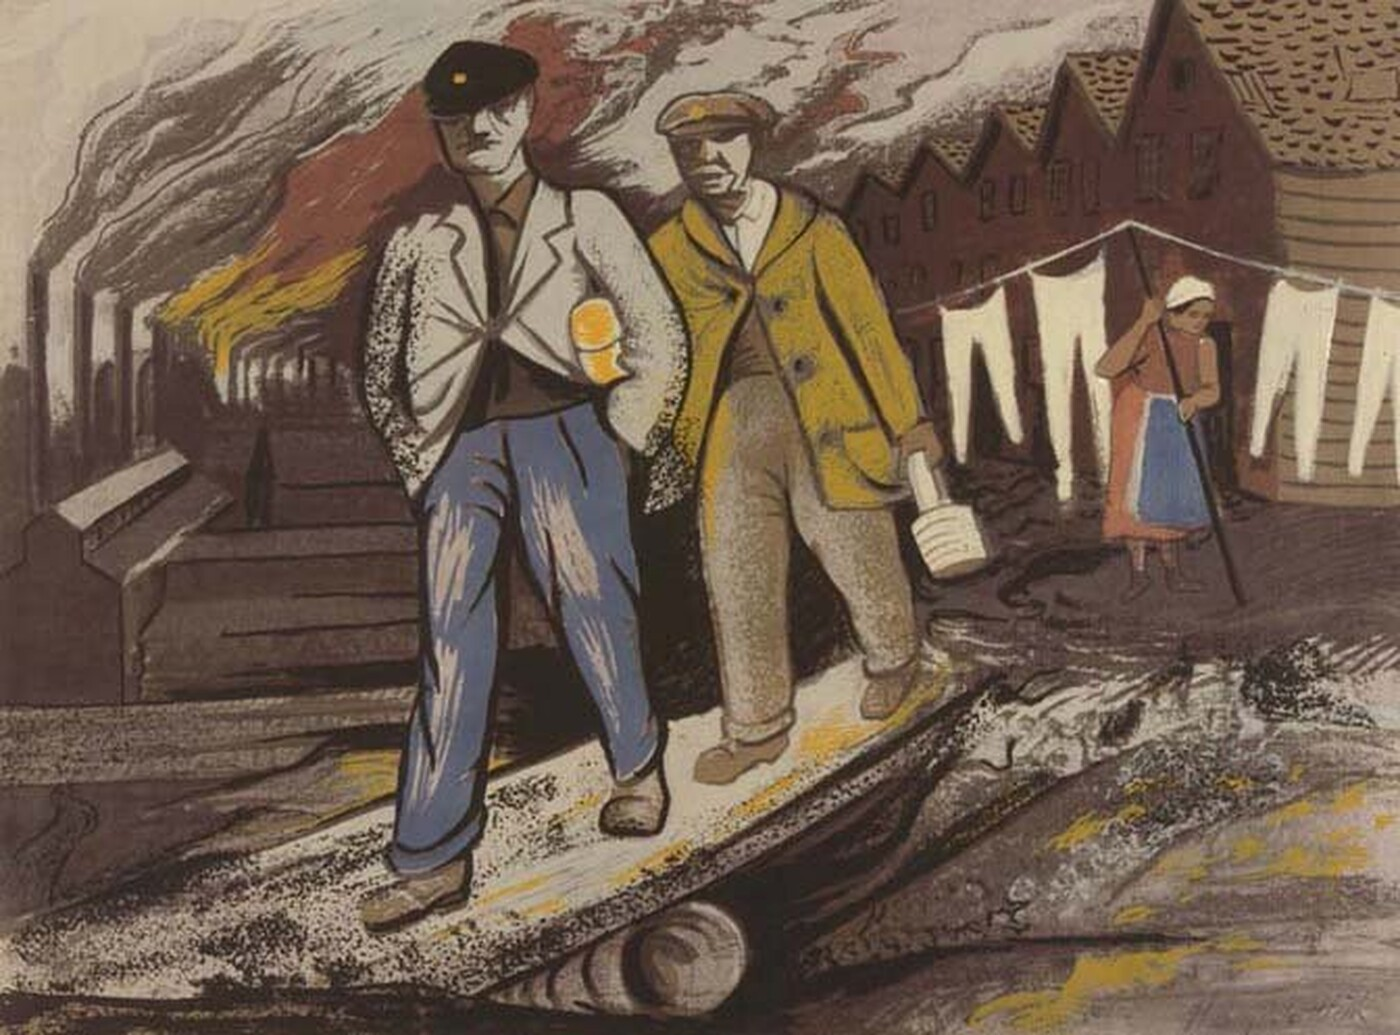 Screen print depicting two men walking and carrying lunch pails - one under his arm, the other in his hand. A woman in the background sweeps up in front of a laundry line as smokestacks emit smoke in the background.